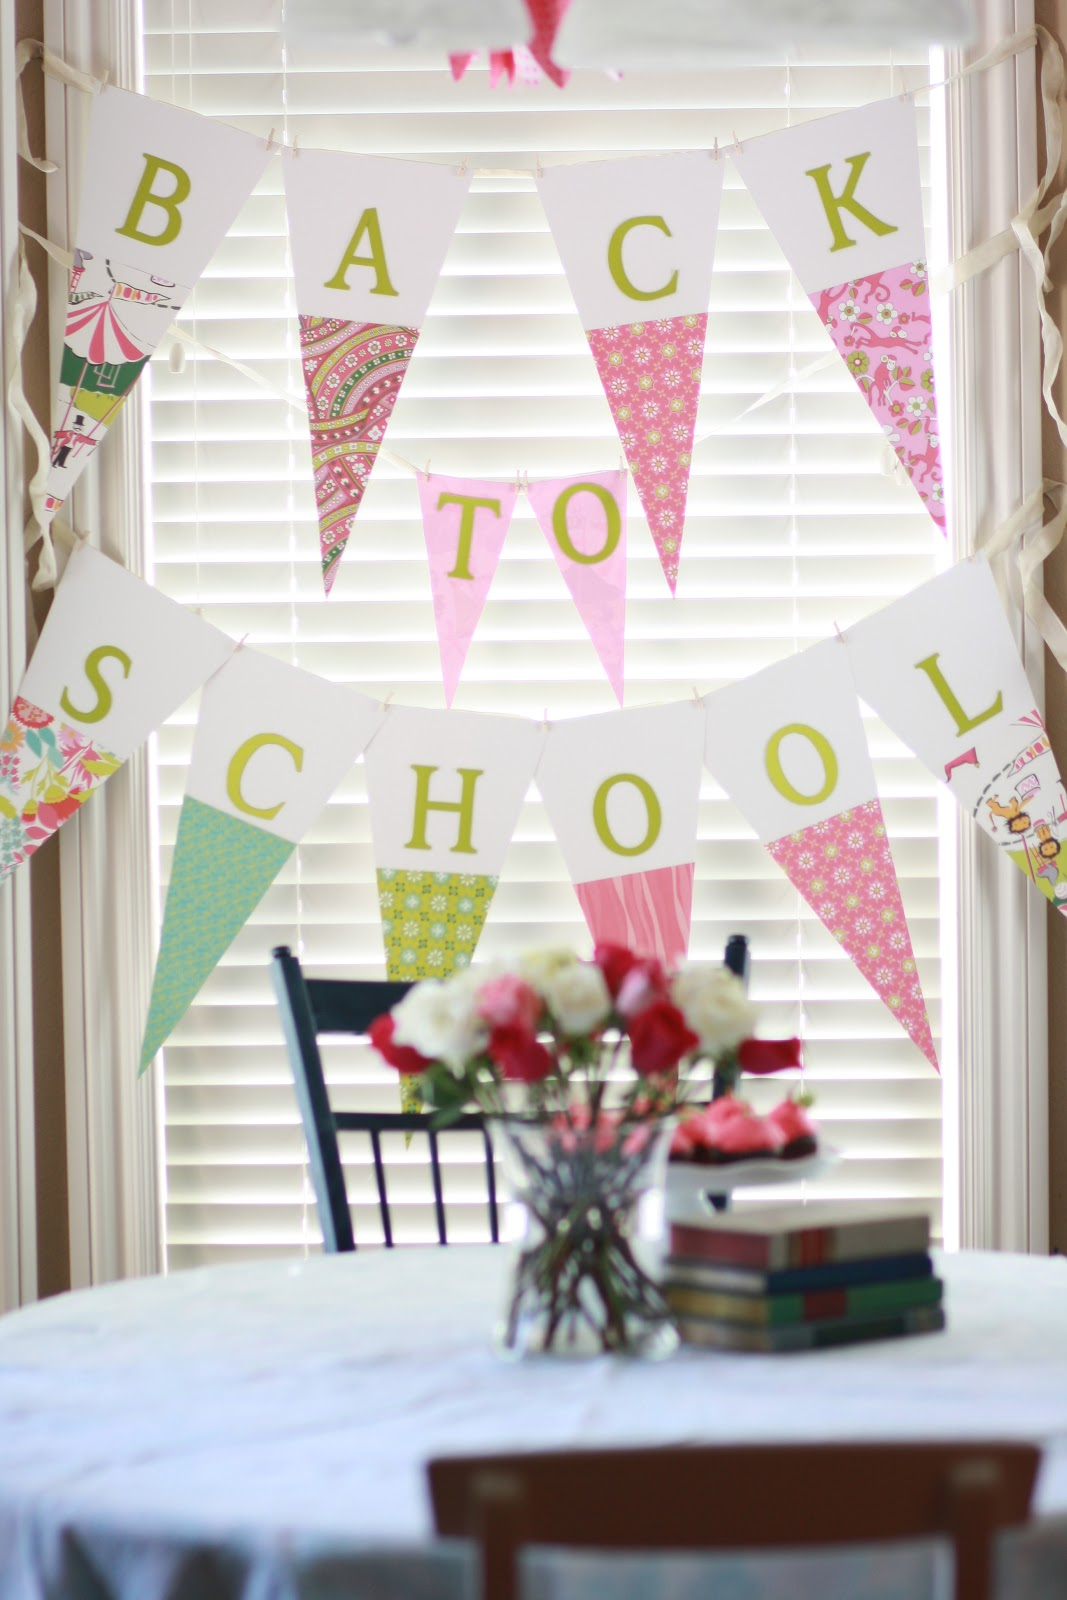 Back to School Party Ideas - At The Picket Fence